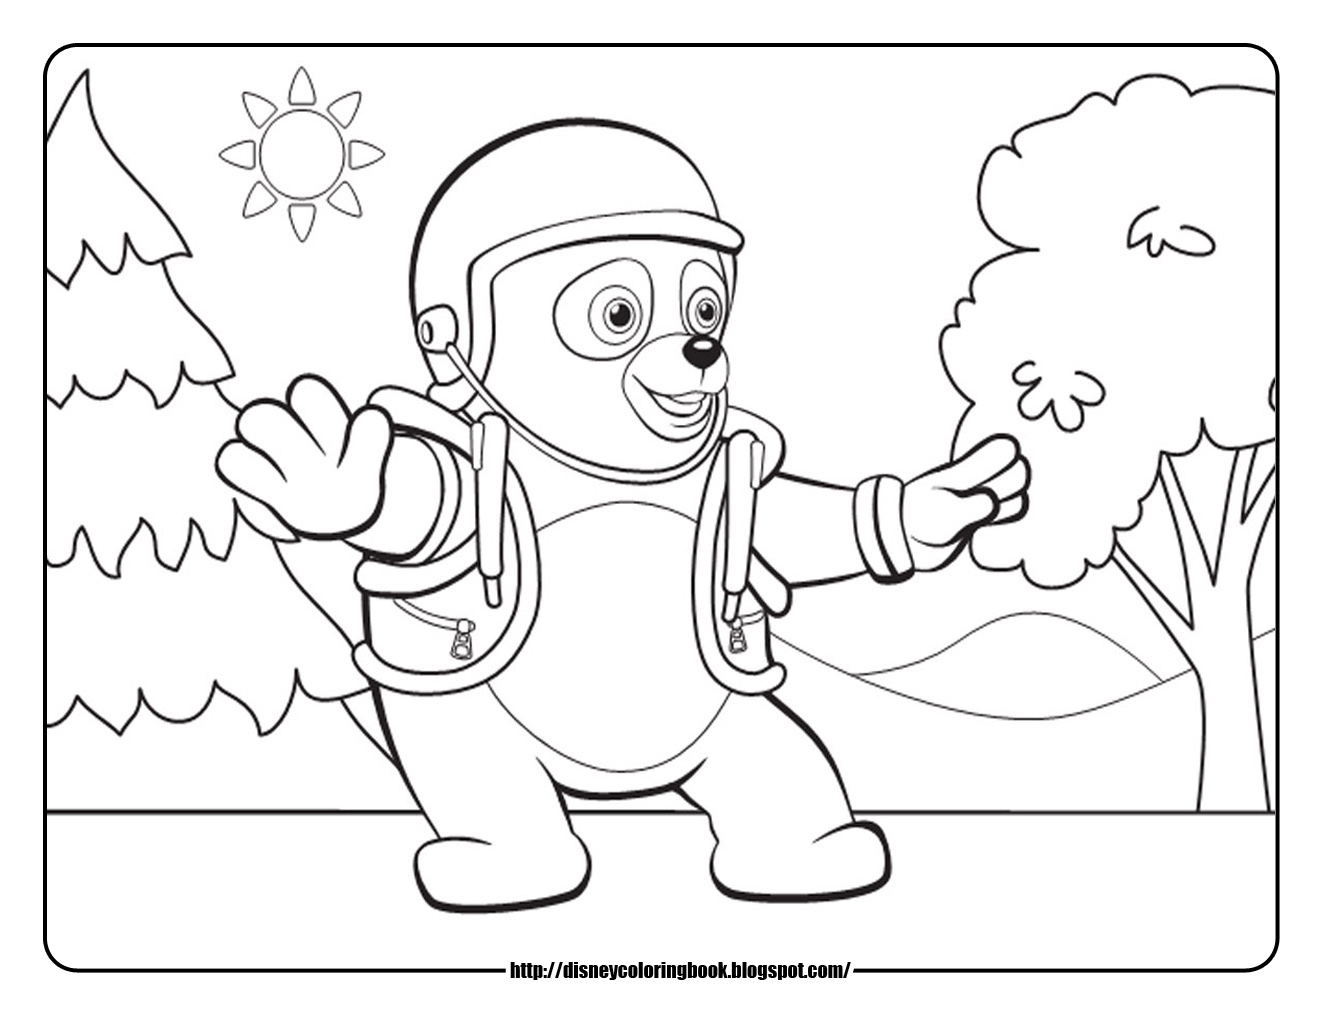 Disney Coloring Pages And Sheets For Kids Special Agent Oso